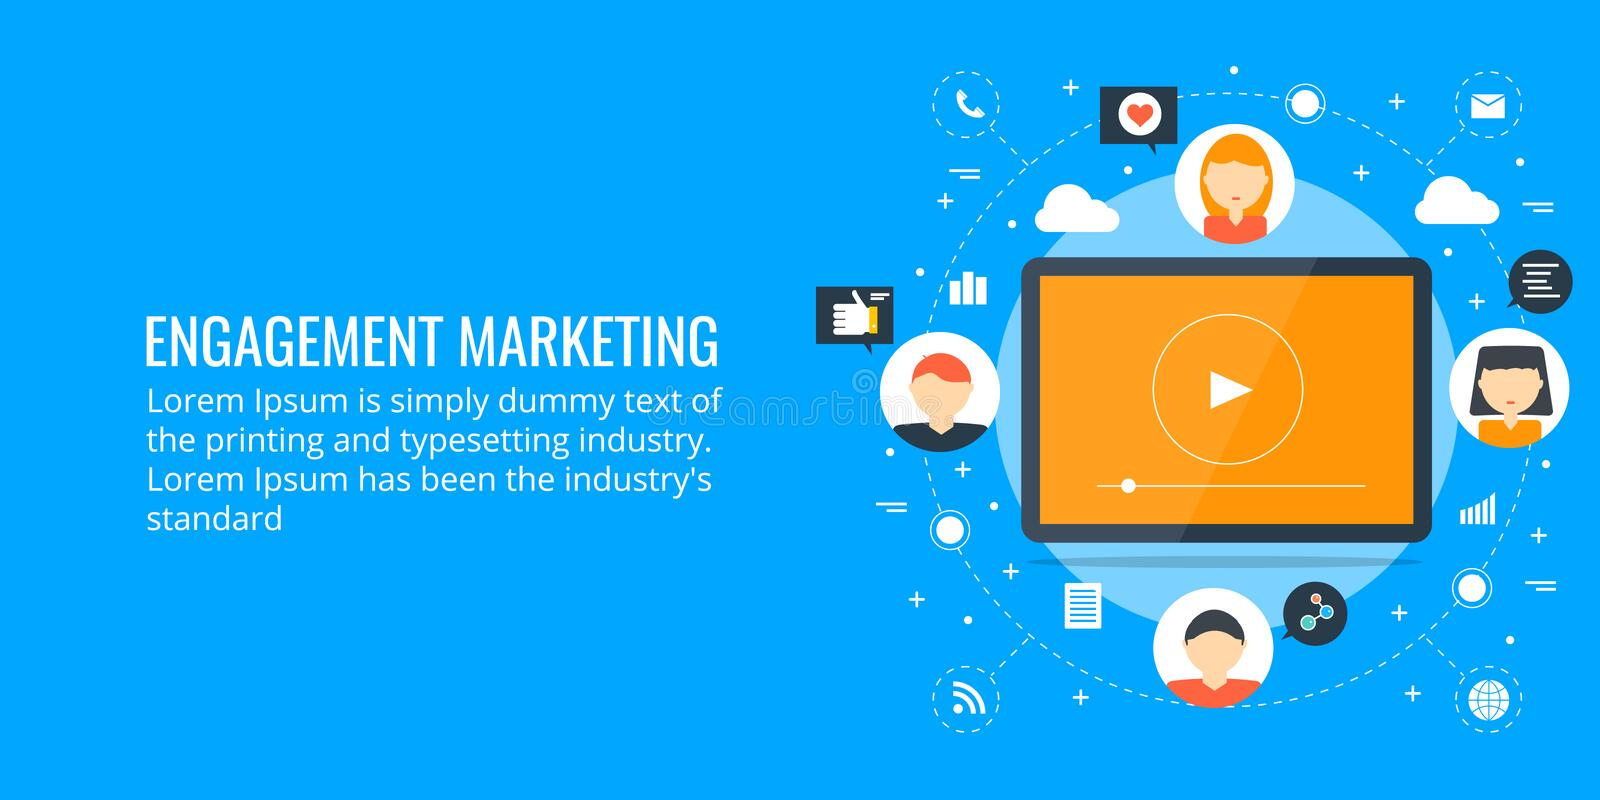 Audience engagement - network marketing concept. Flat design marketing banner. Concept of network marketing, audience engagement and digital business. Flat royalty free illustration